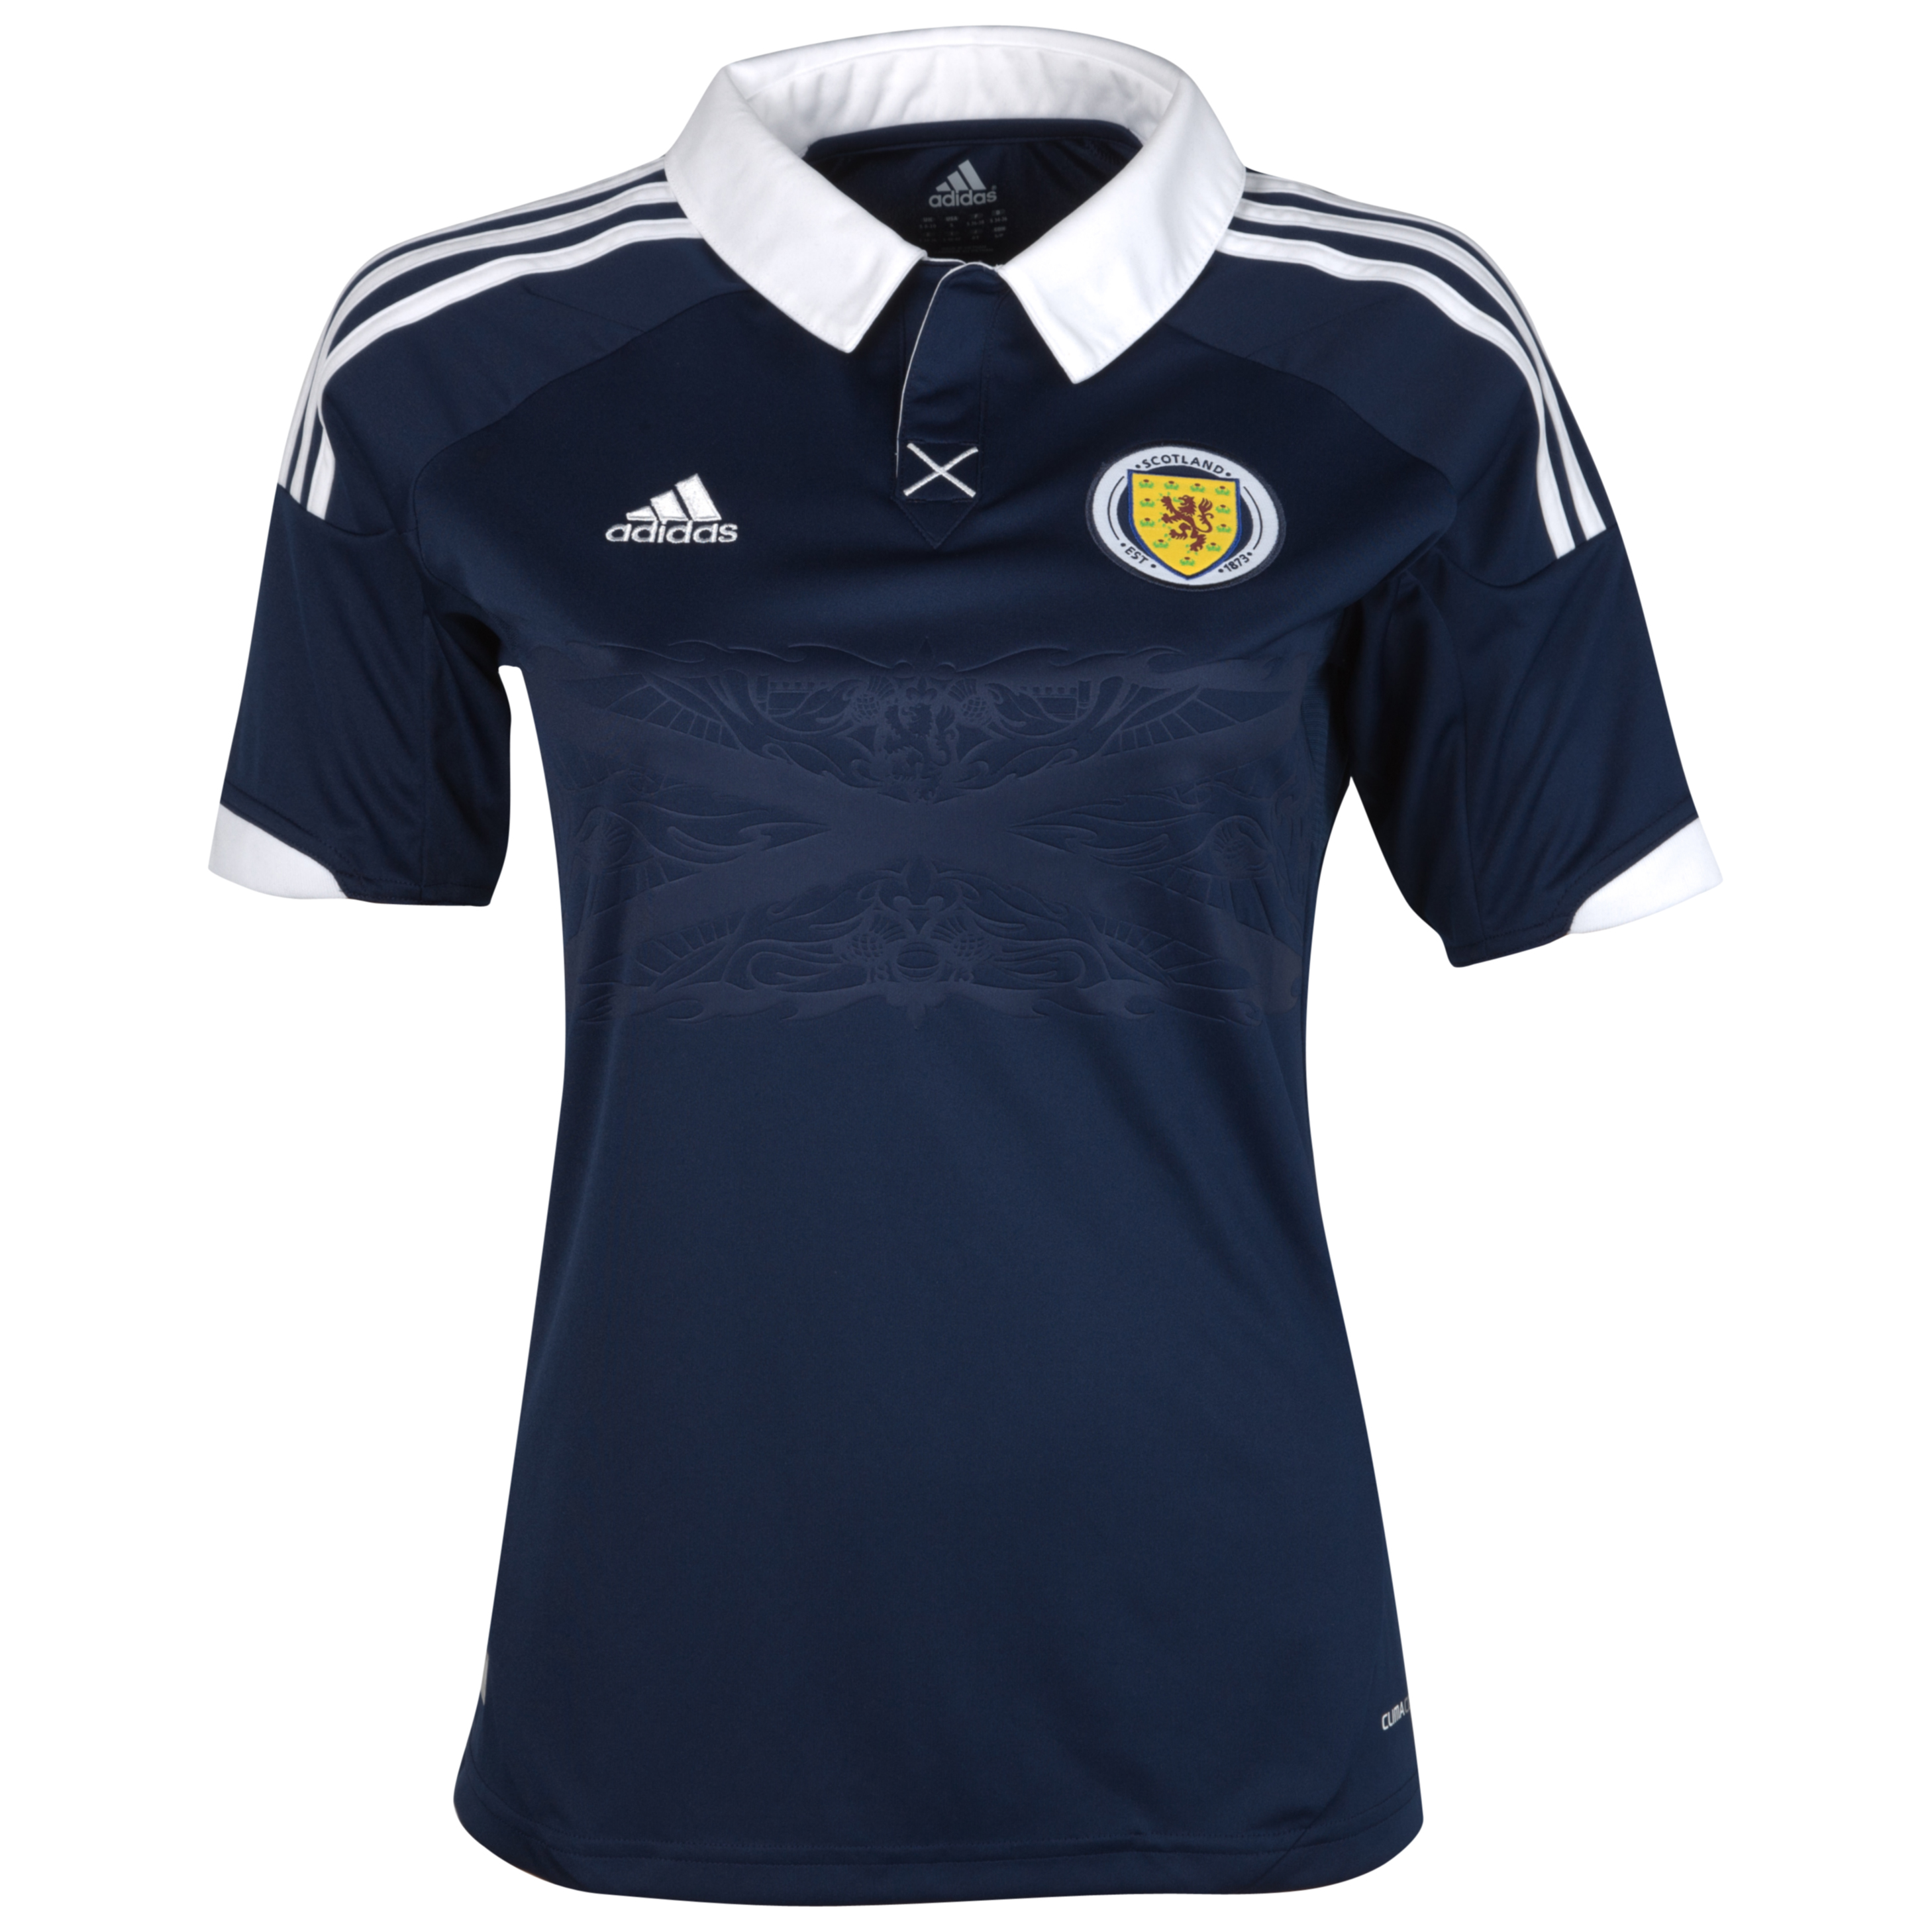 Scotland Home Shirt 2012/14 - Womens - Dark Indigo/White